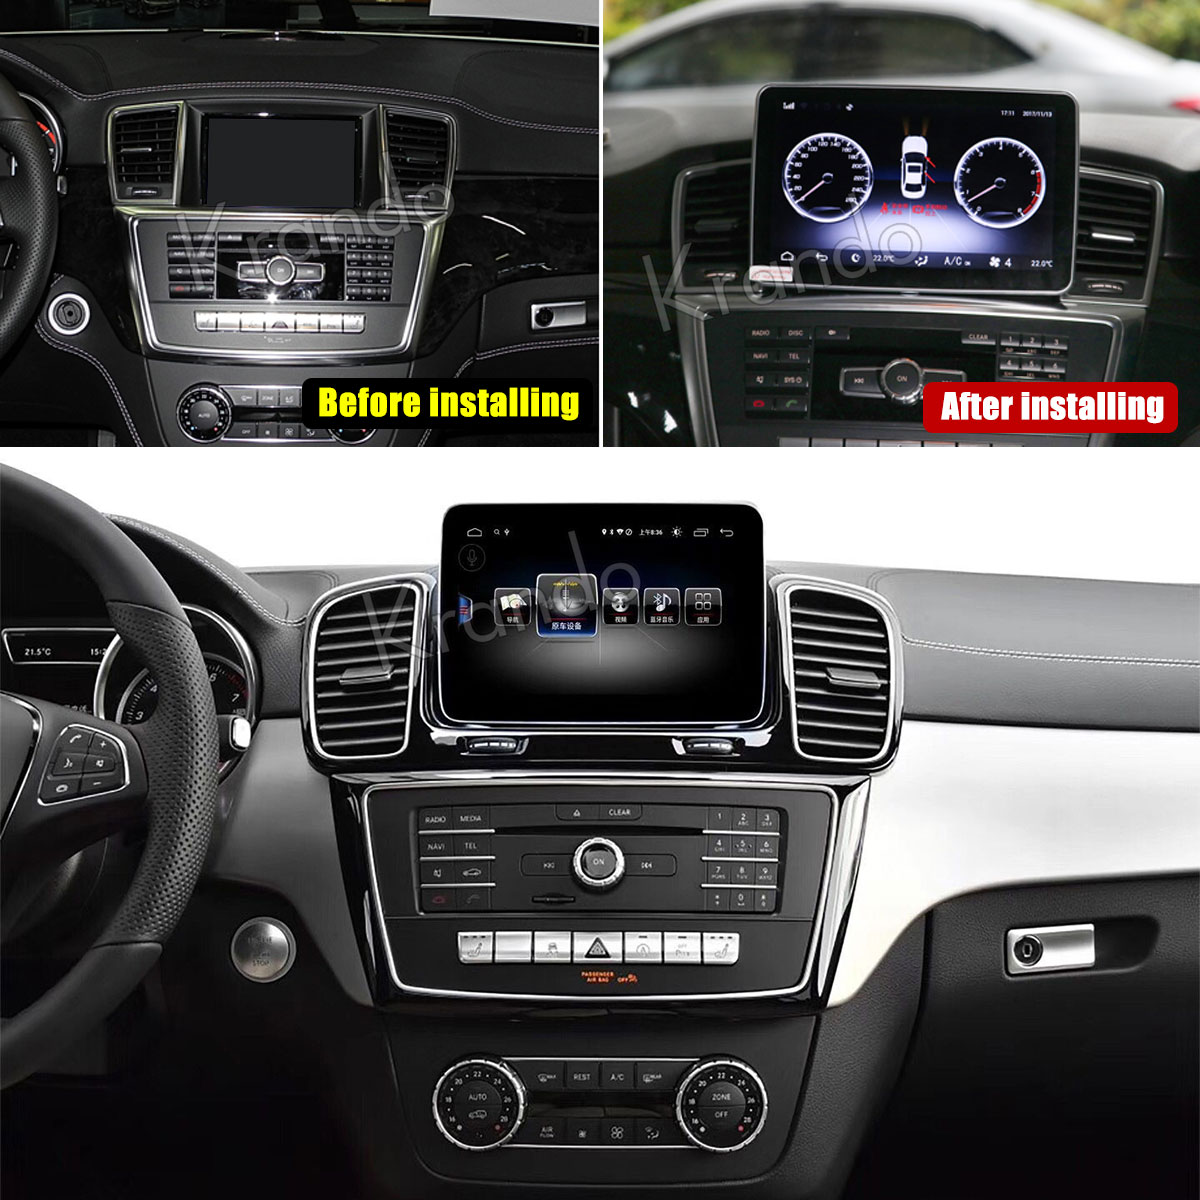 Krando Android 8.1 4G RAM 64G ROM 8 CORE 8.4'' With 4G SIM NTG 4.5 for mercedes for benz ml <strong>w164</strong> car <strong>dvd</strong> gps 2012-2015